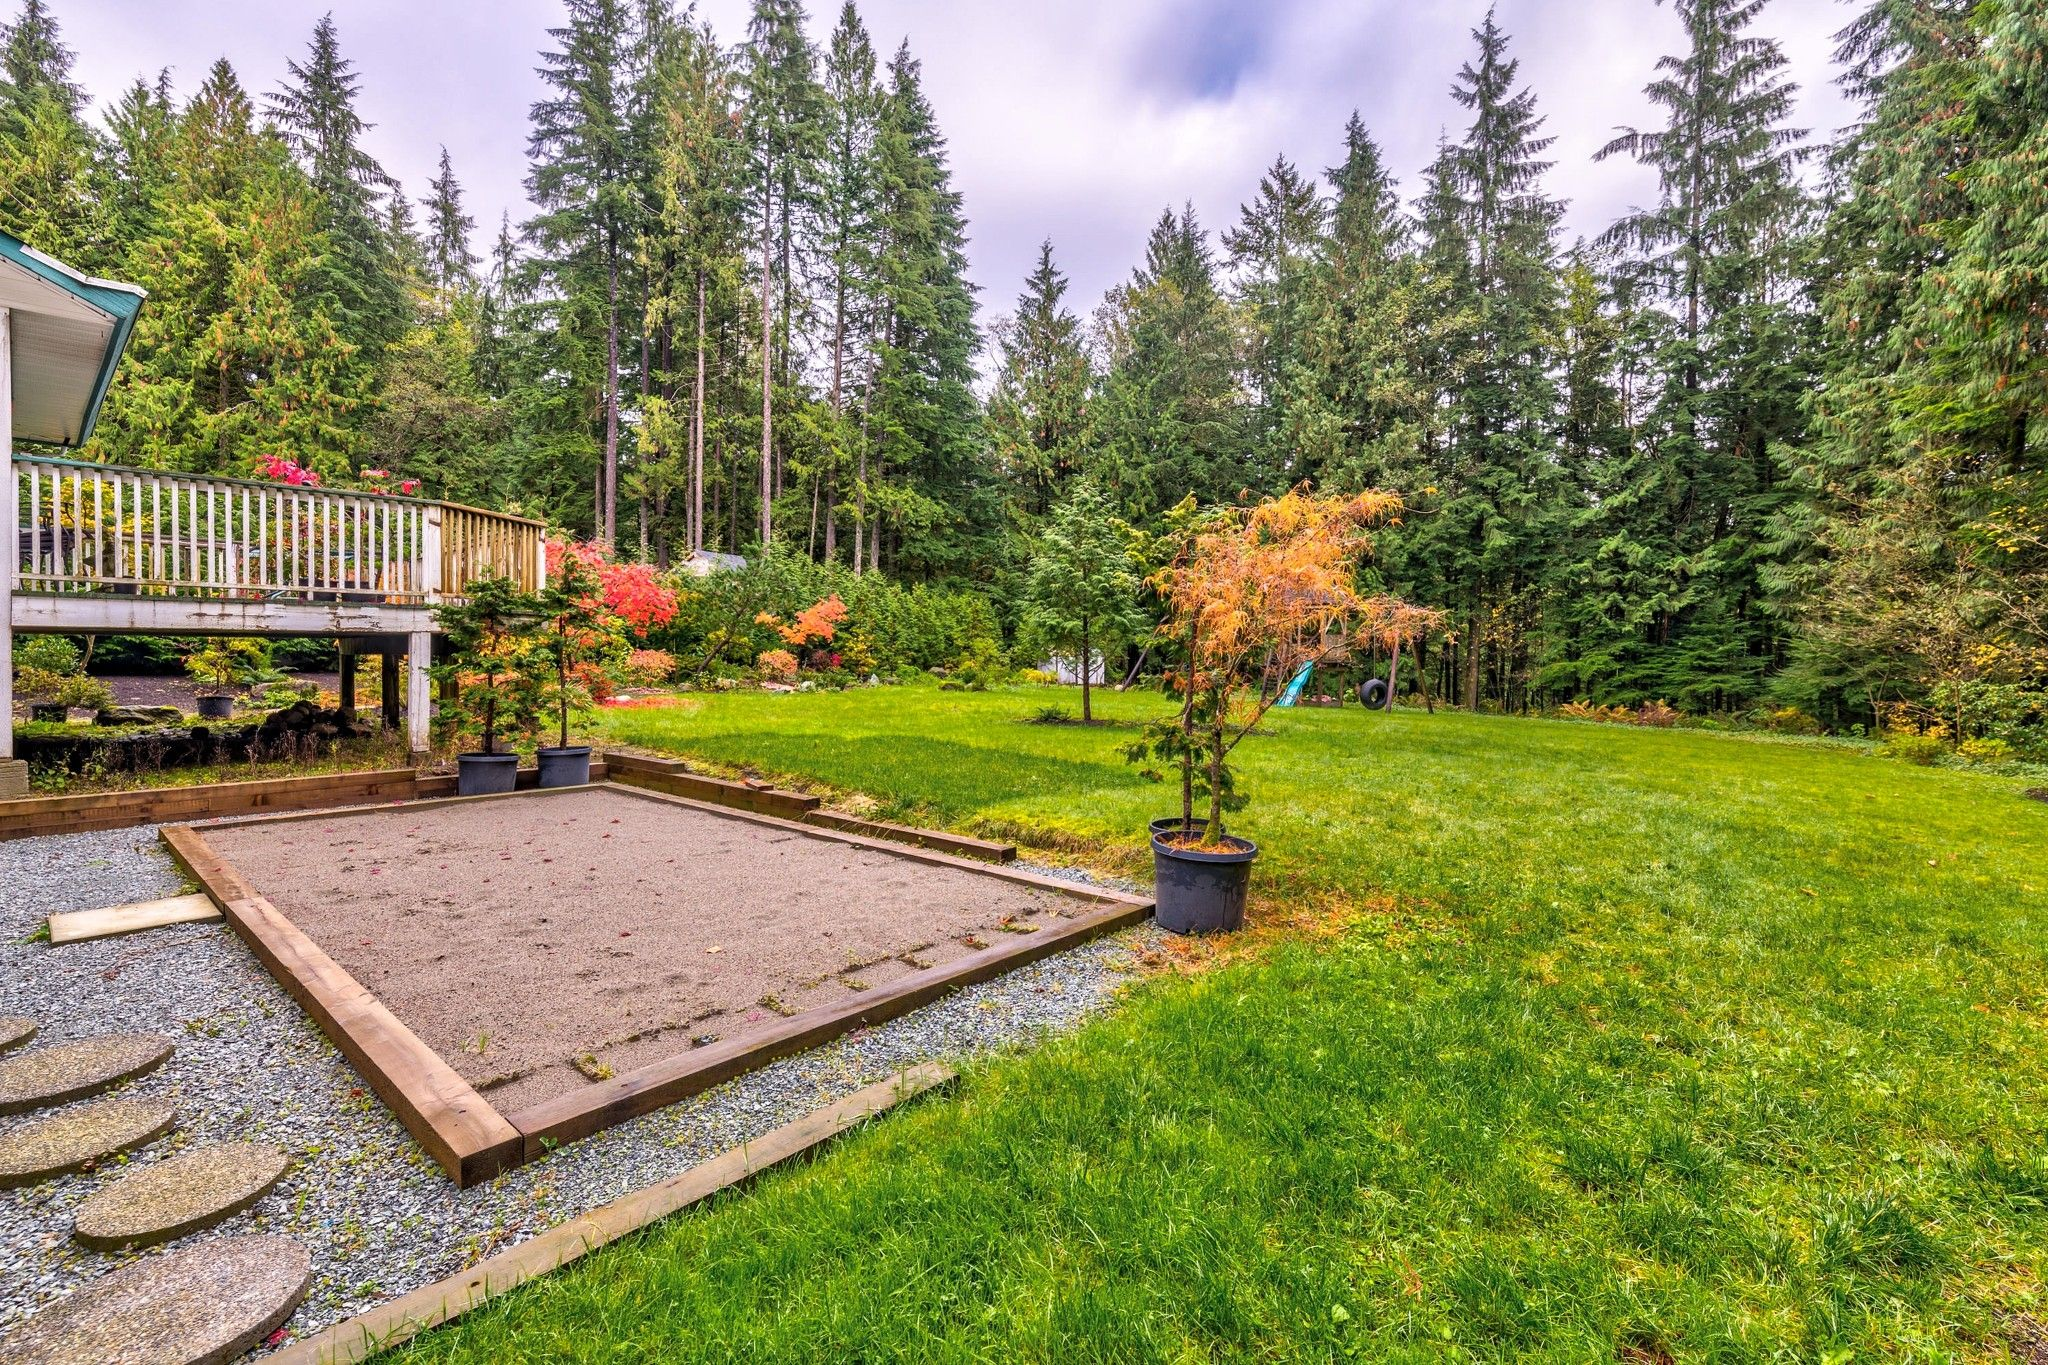 Photo 22: Photos: 27830 Laurel Place in Maple Ridge: Northeast House for sale : MLS®# R2415483